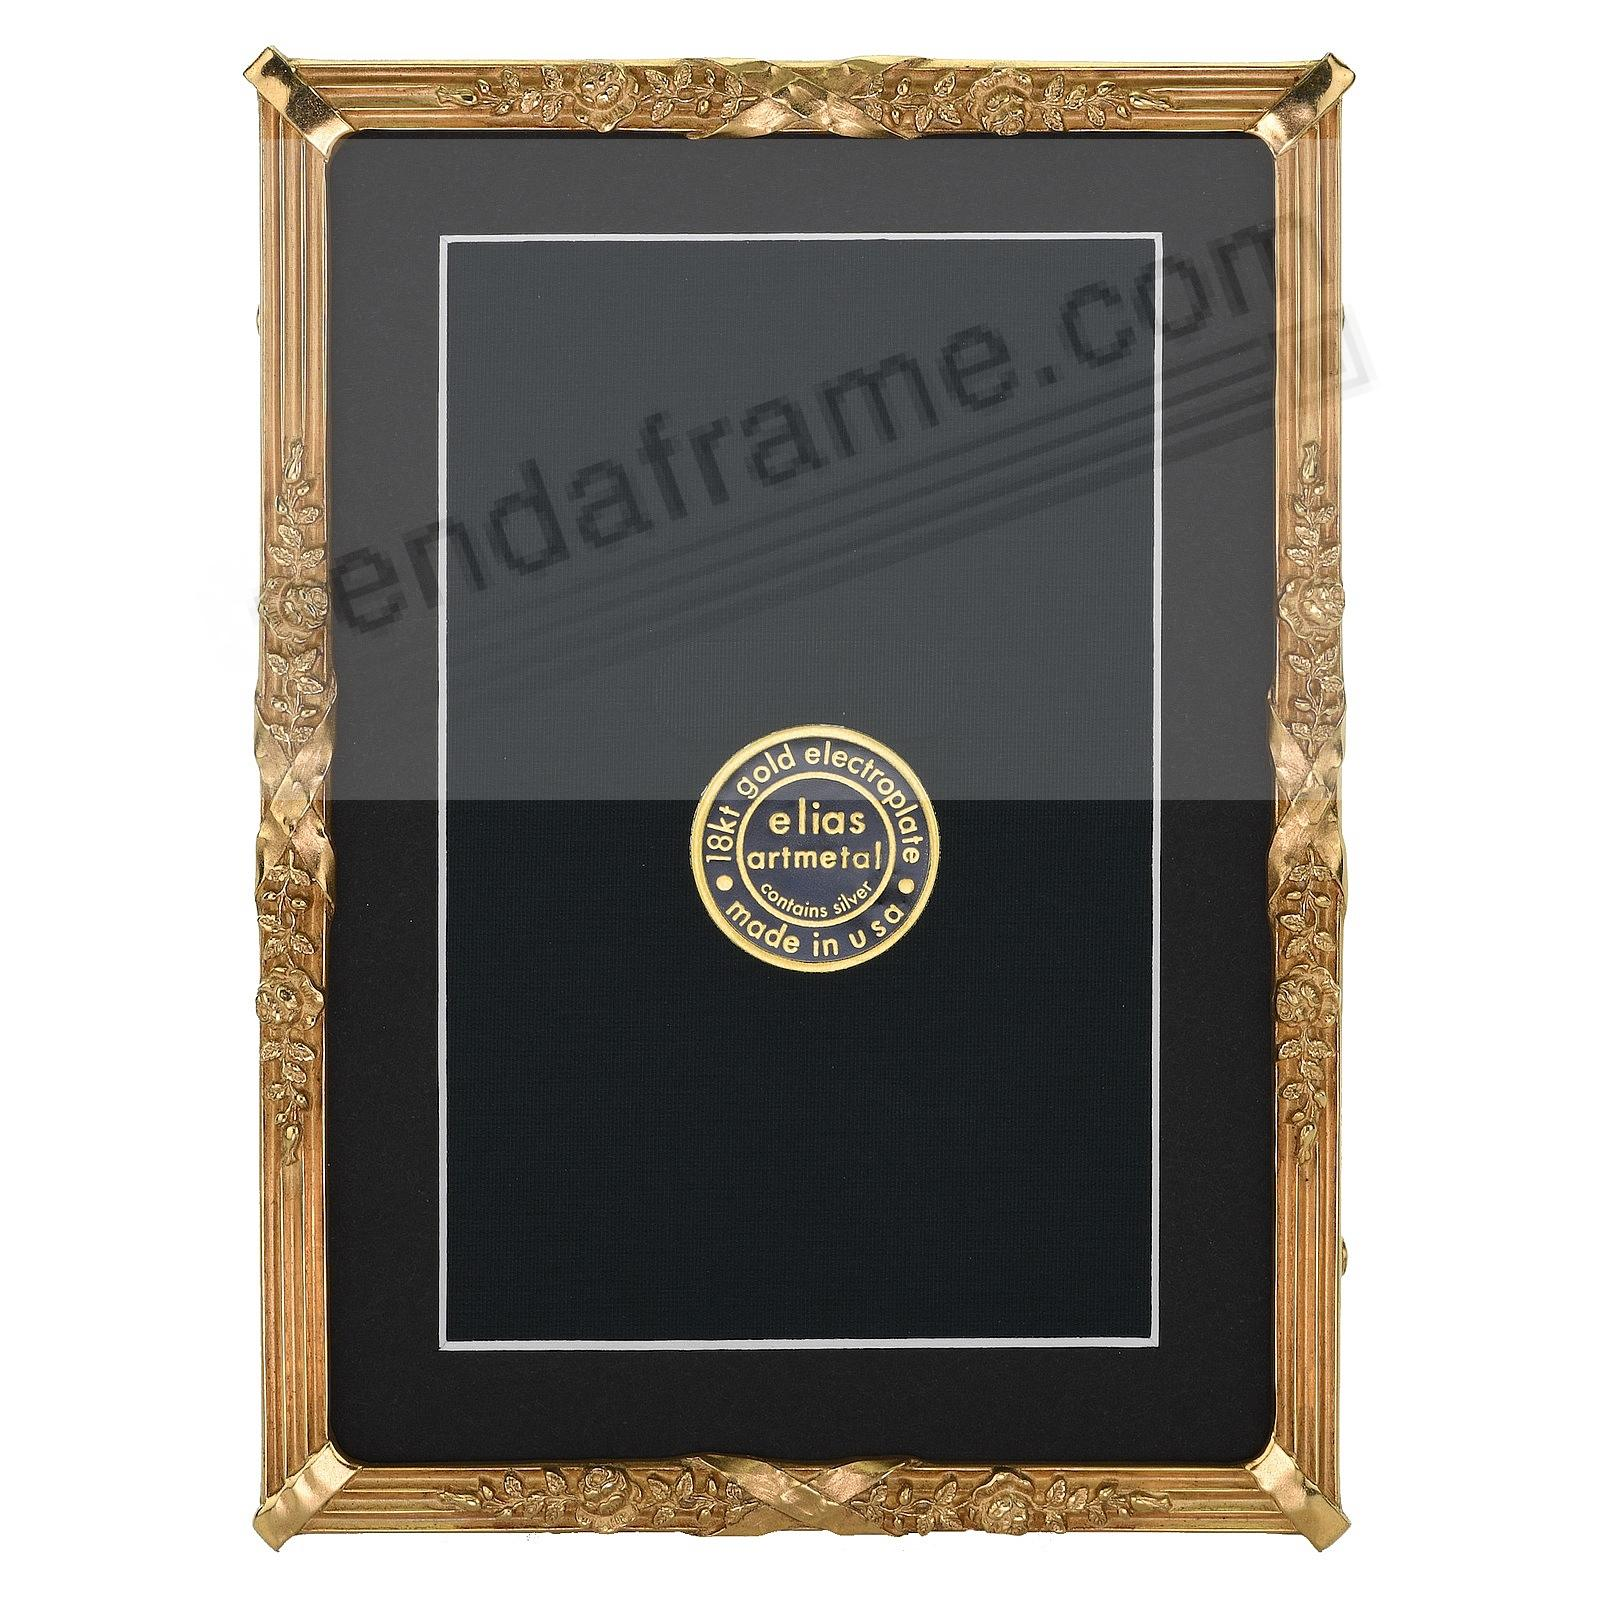 PETITE LOUIS Luxe 18kt Museum Gold over Fine Pewter 5x7/4x6 frame by Elias®